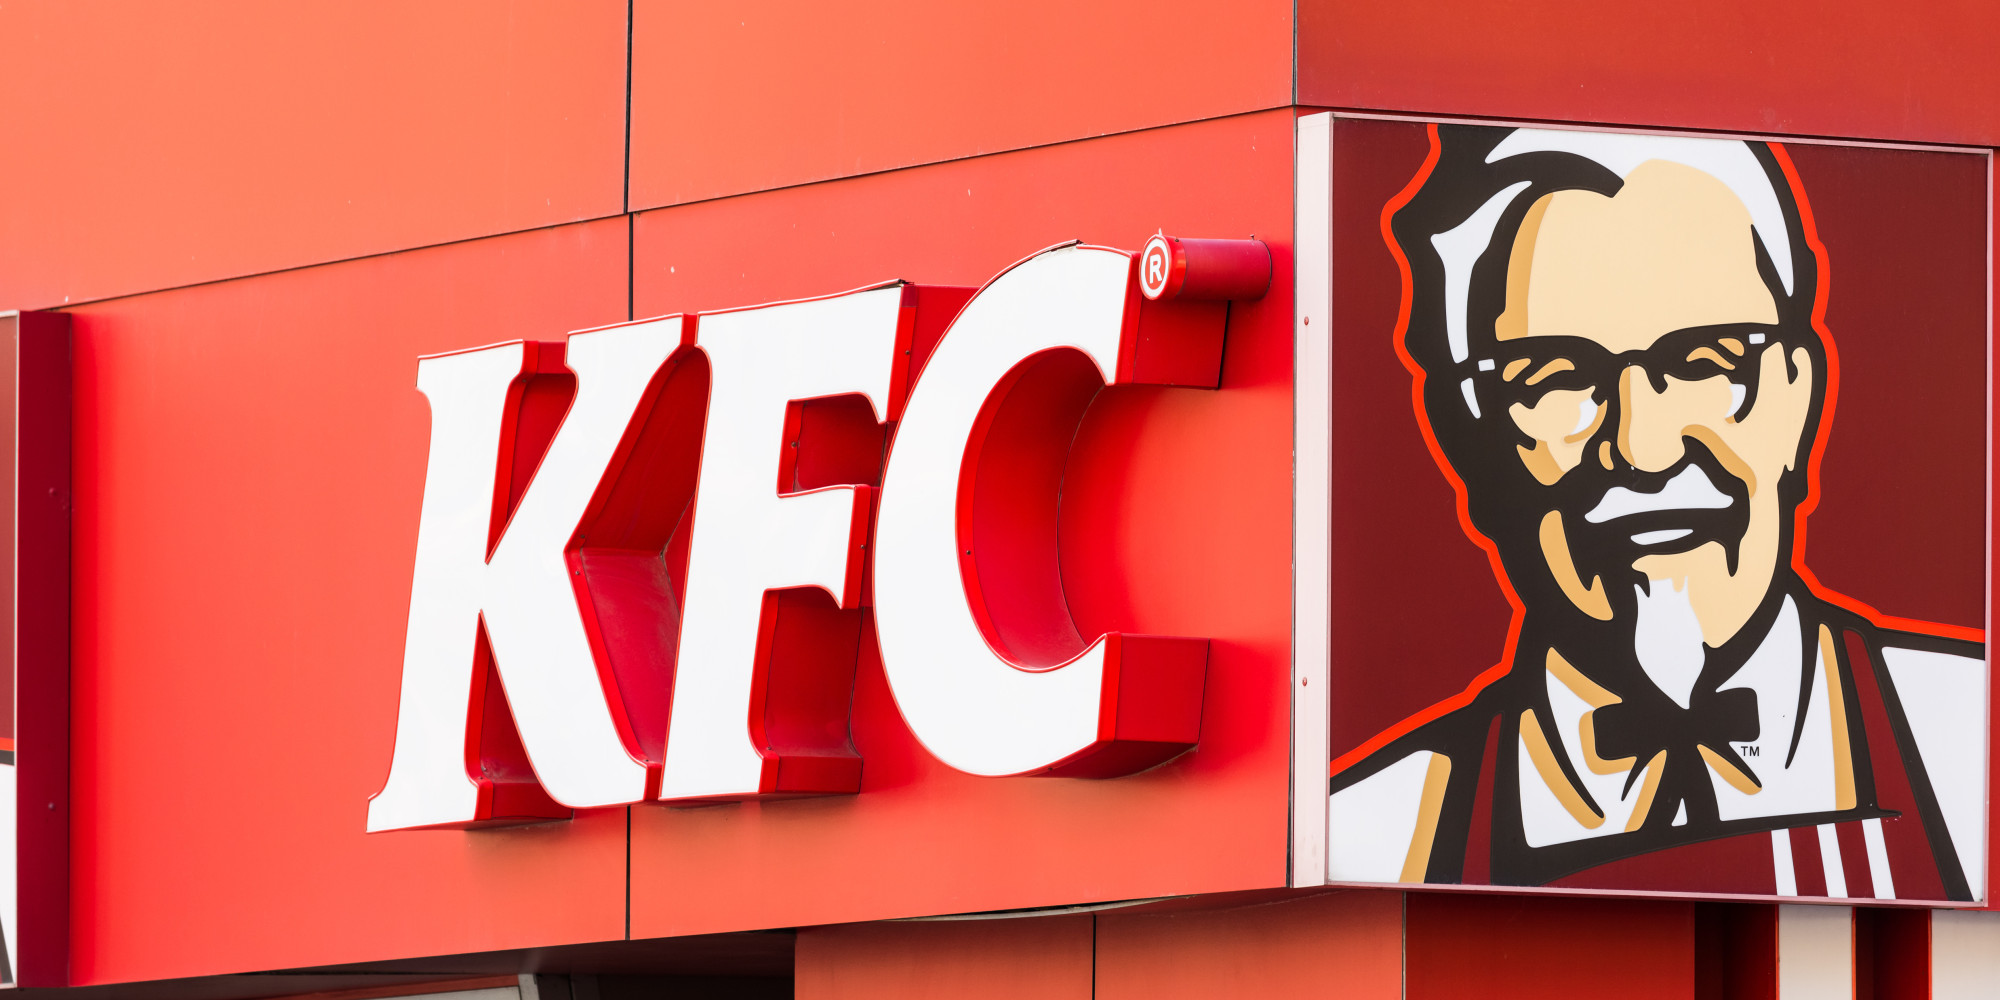 business purpose kfc Kfc is ready to speed up service, thanks to new technology the change has two purposes kfc's chief information officer, told business insider i think we can make our restaurant managers more efficient using technology.